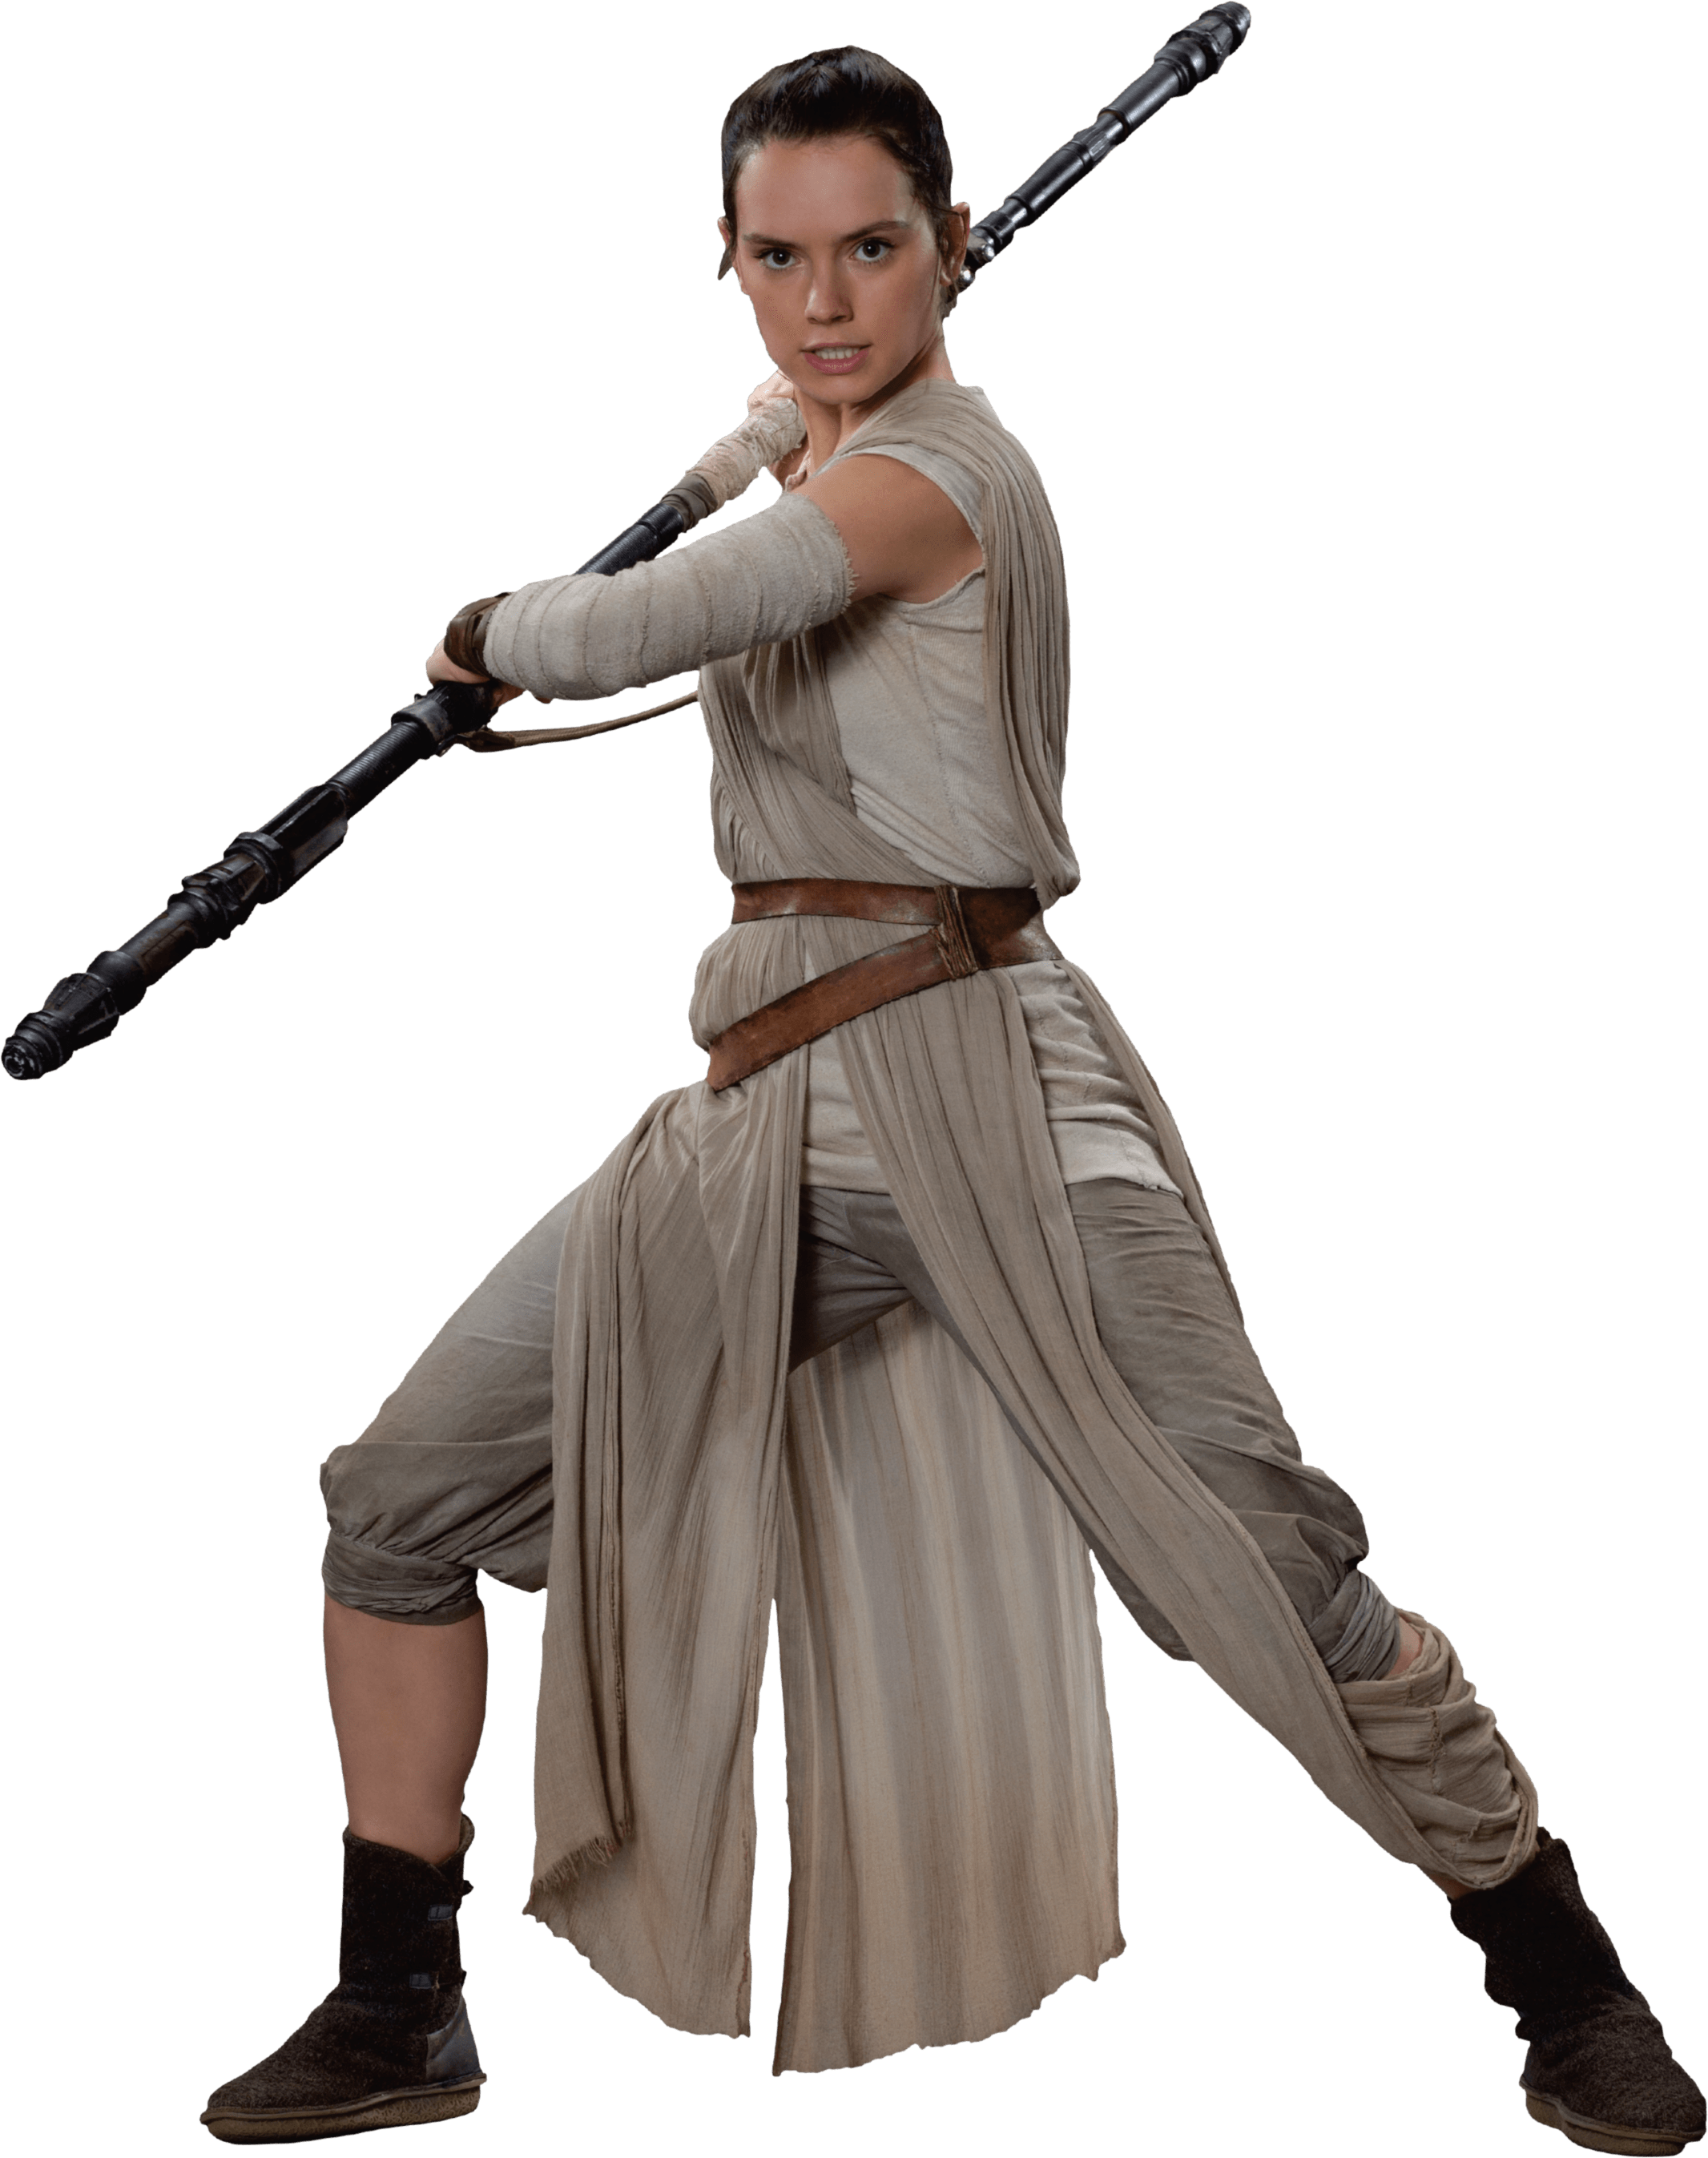 Star wars rey clipart picture download Star Wars Rey Skywalker transparent PNG - StickPNG picture download